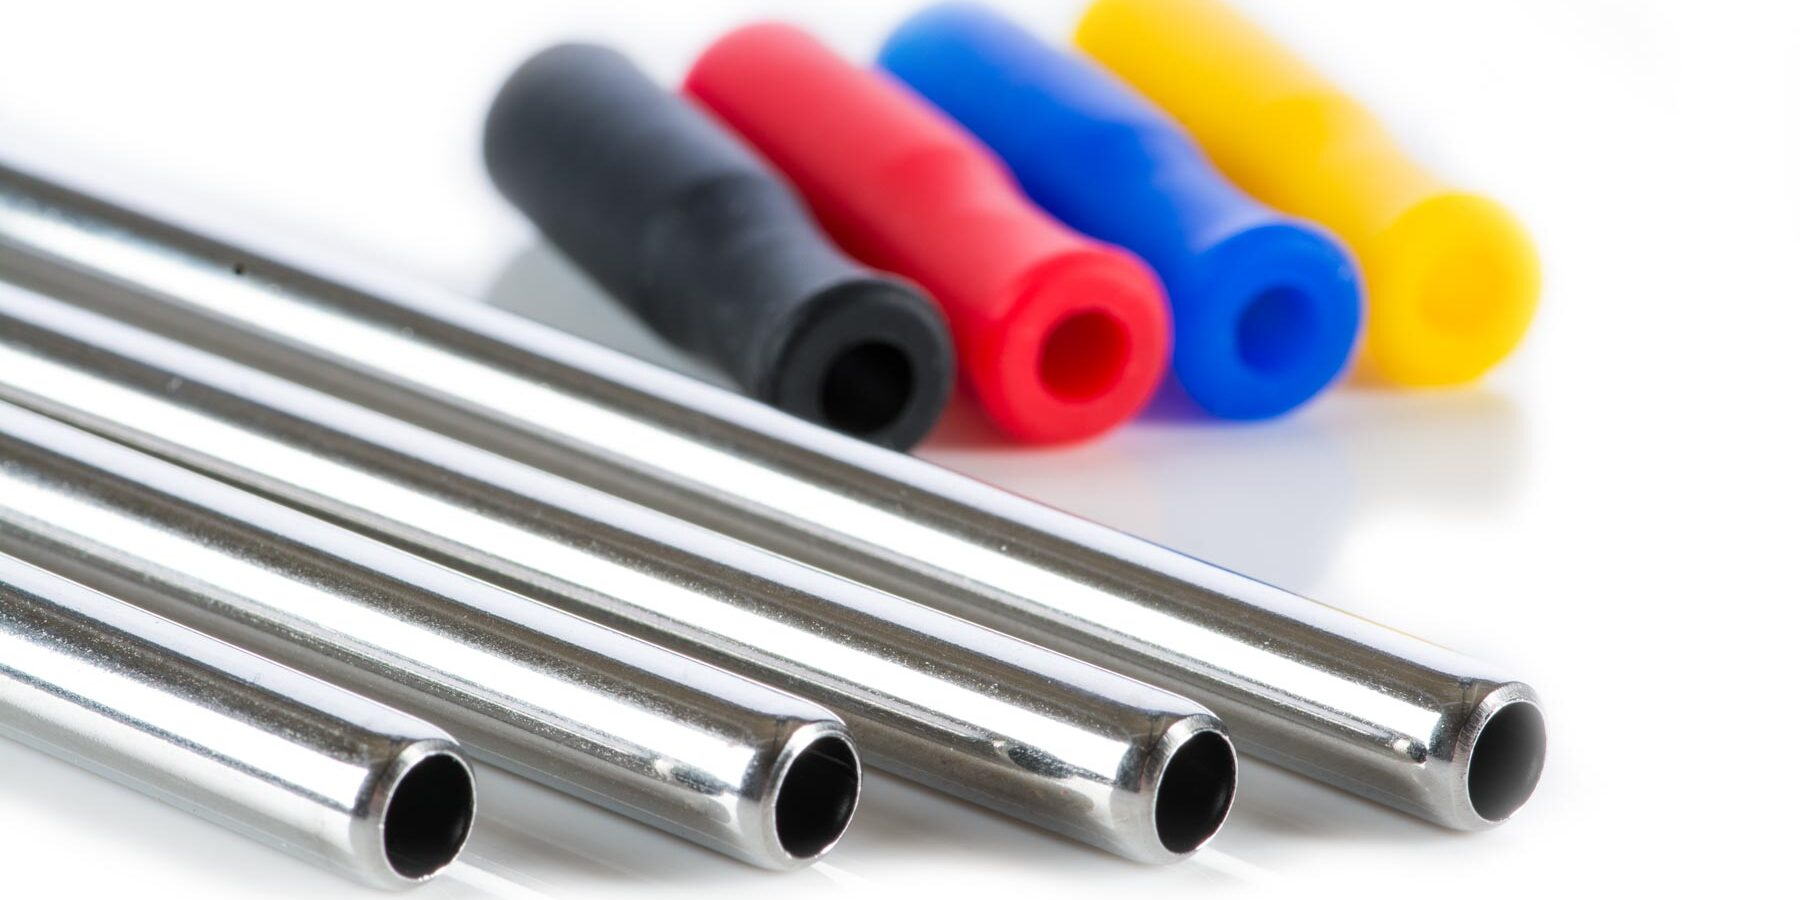 126mm*6mm Stainless Steel Drinking Straw